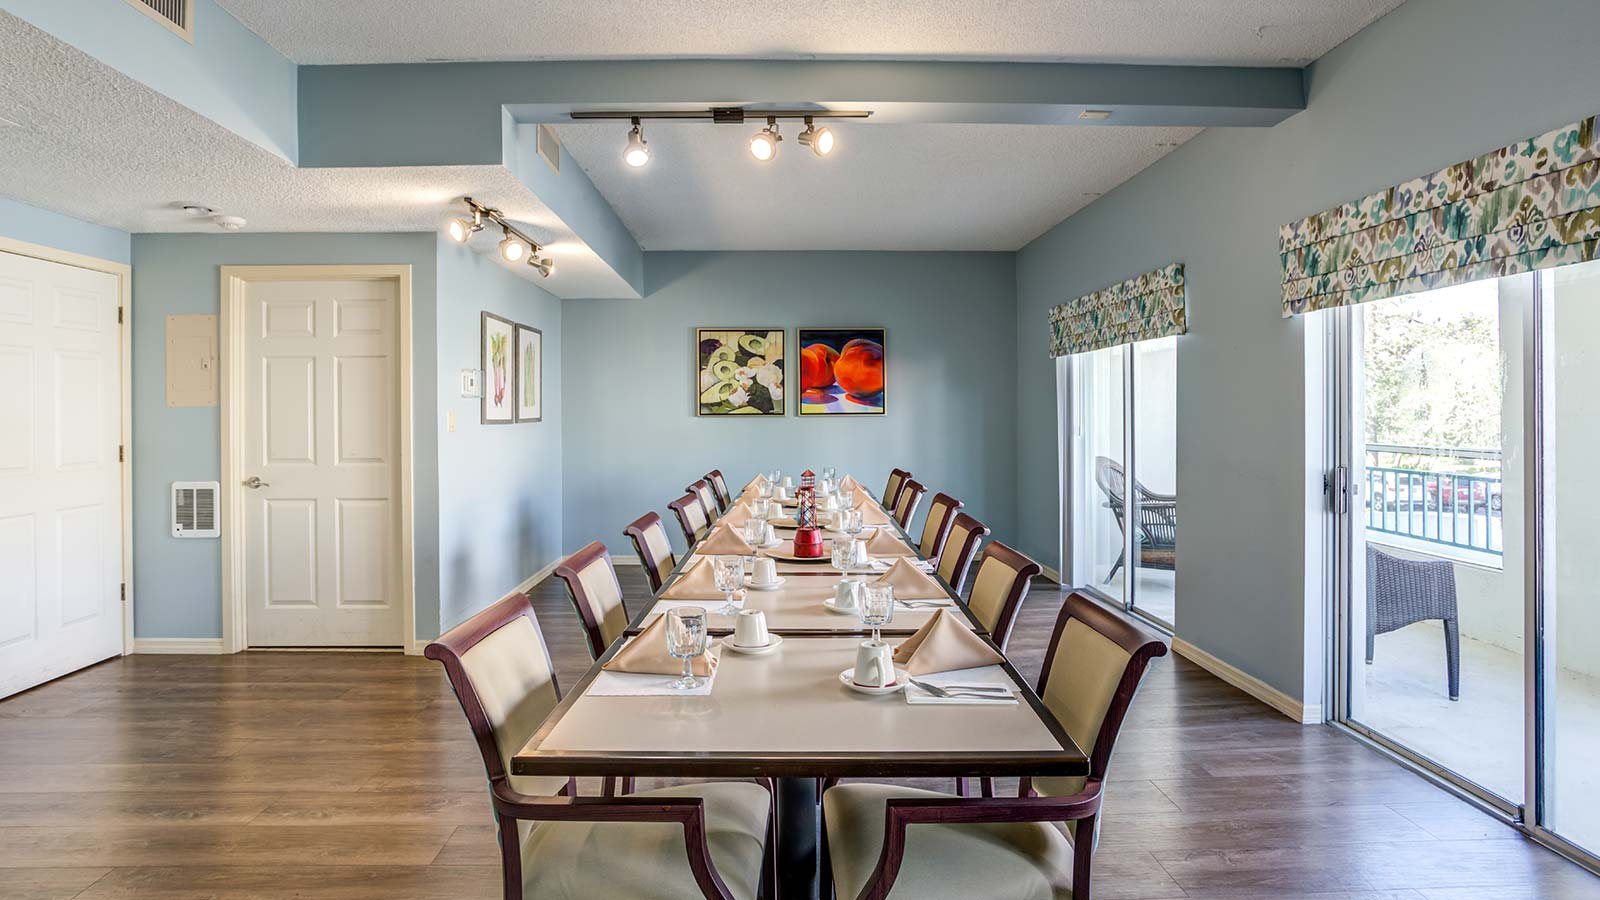 Private dining room at Heron Club assisted living and memory care in Sarasota Florida